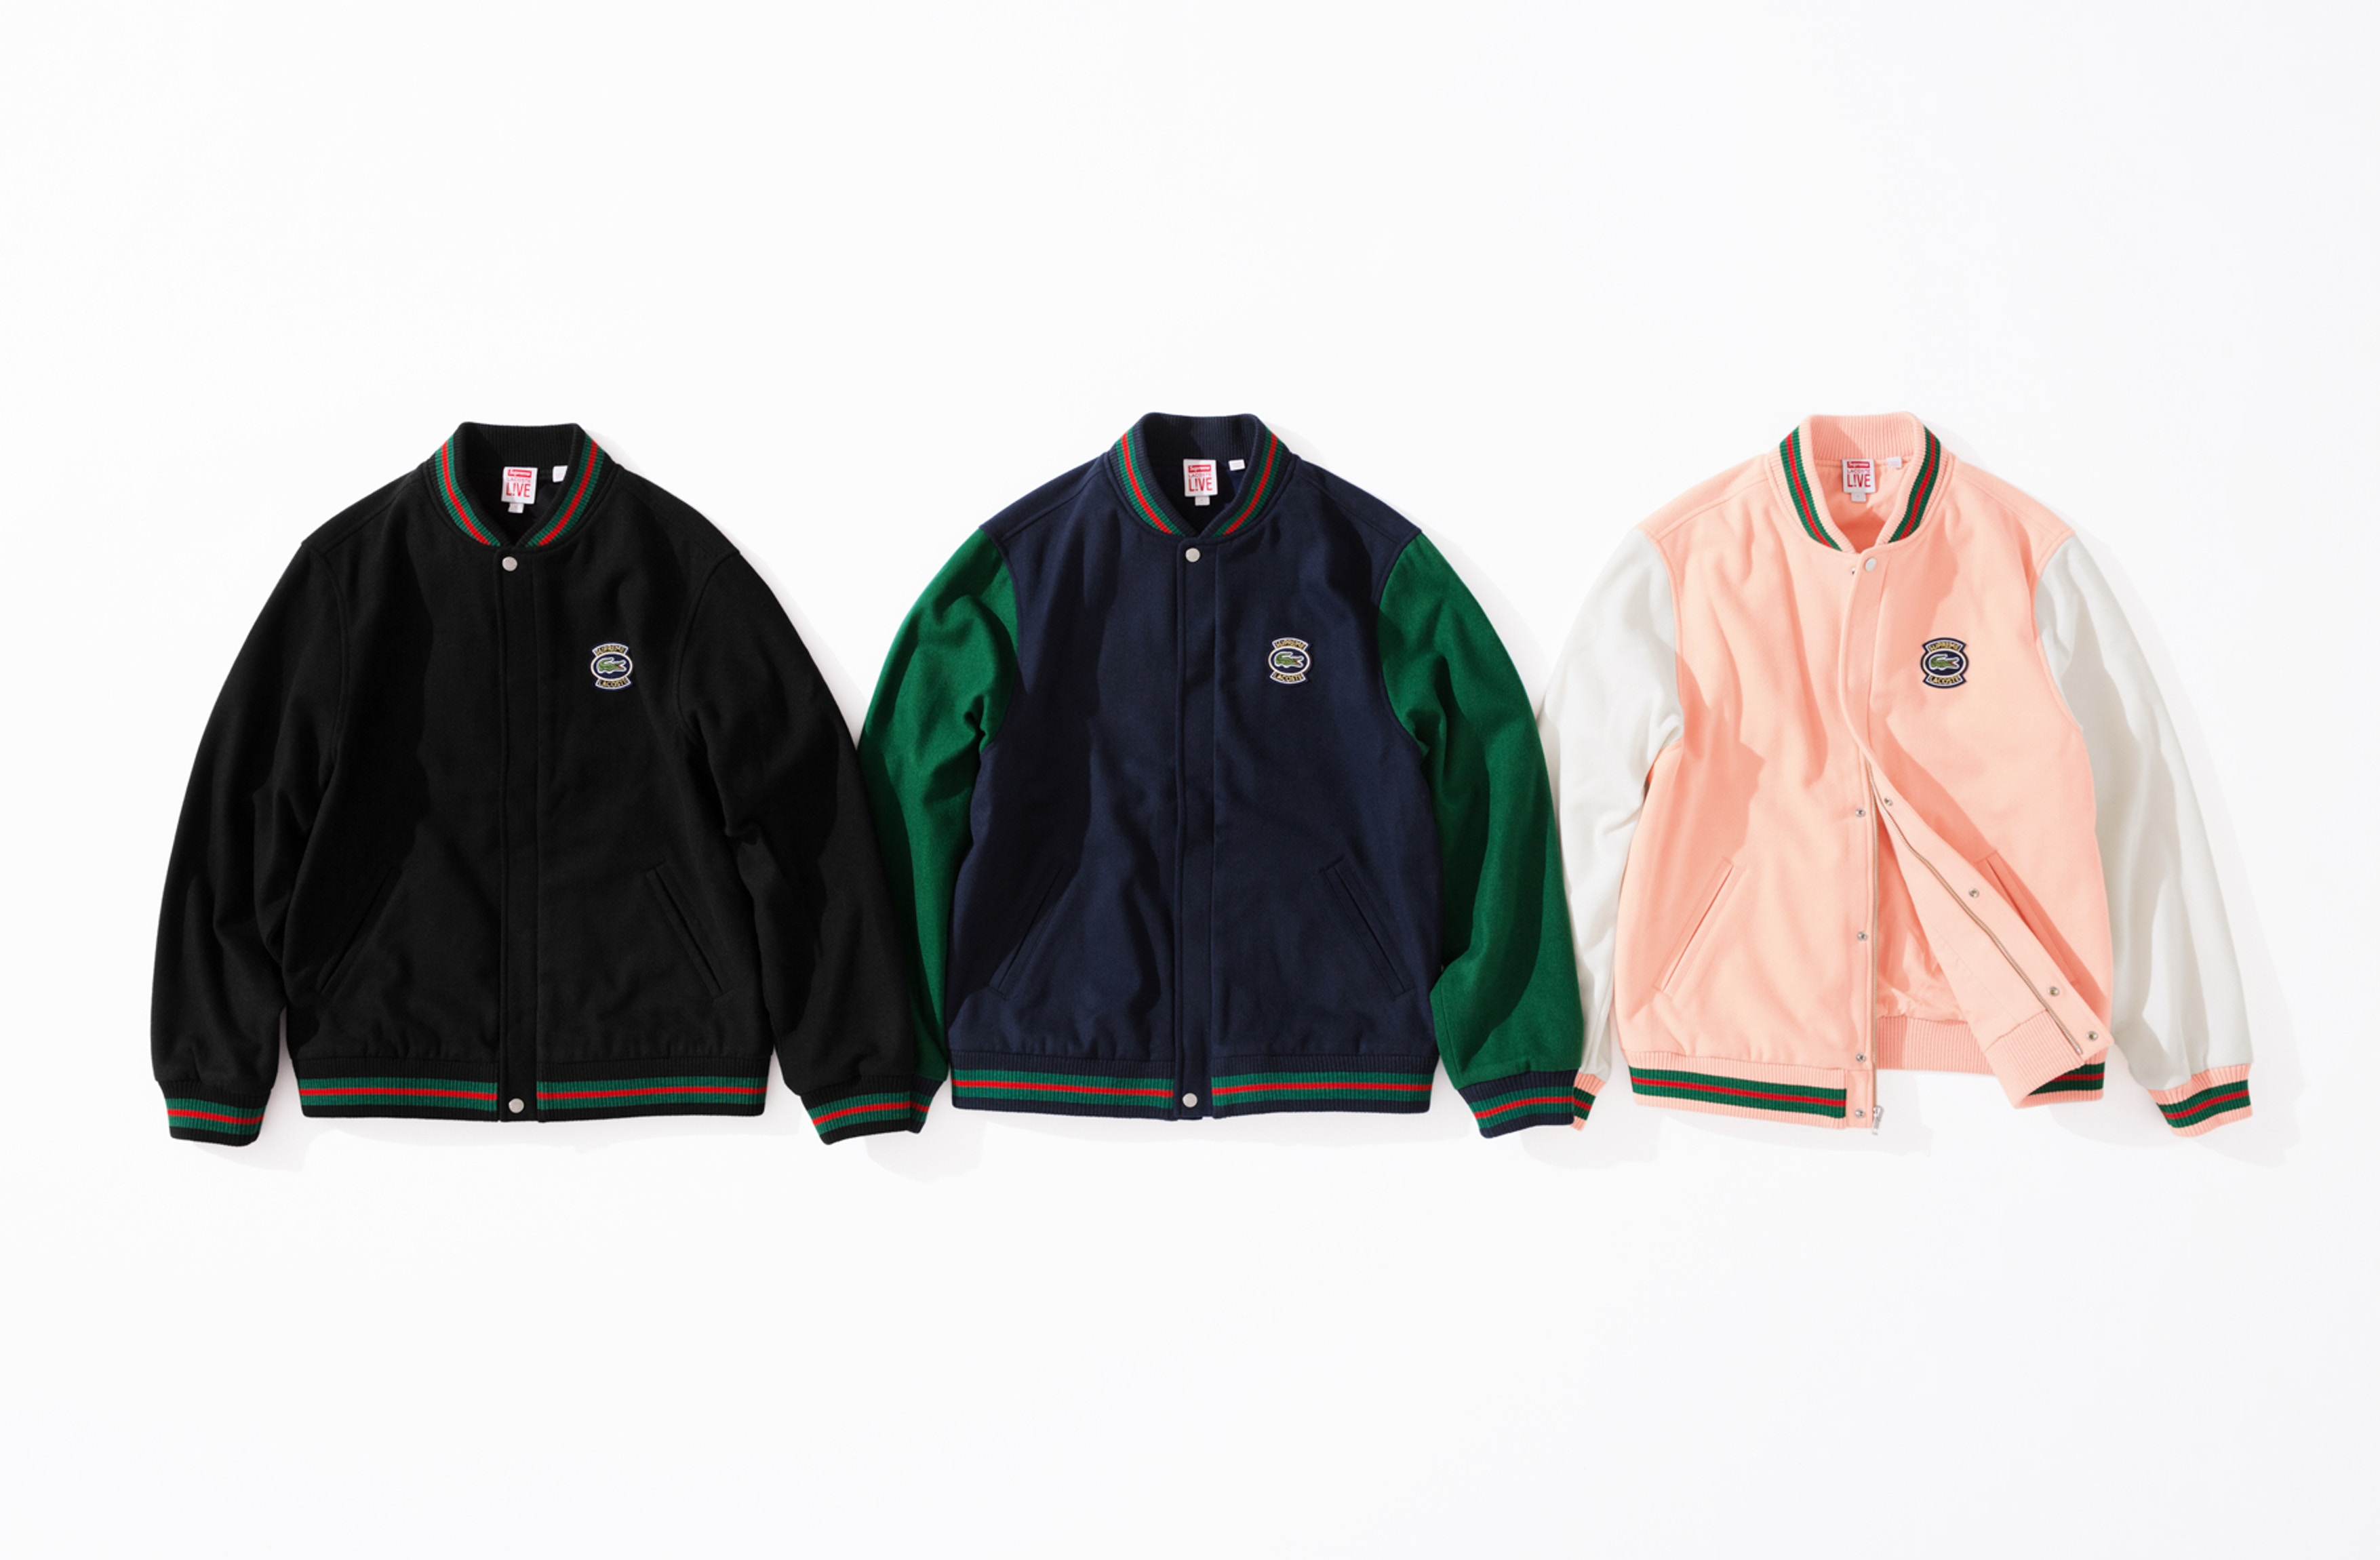 73792f8f16fe2 The collection is expected to hit Supreme s online webshop